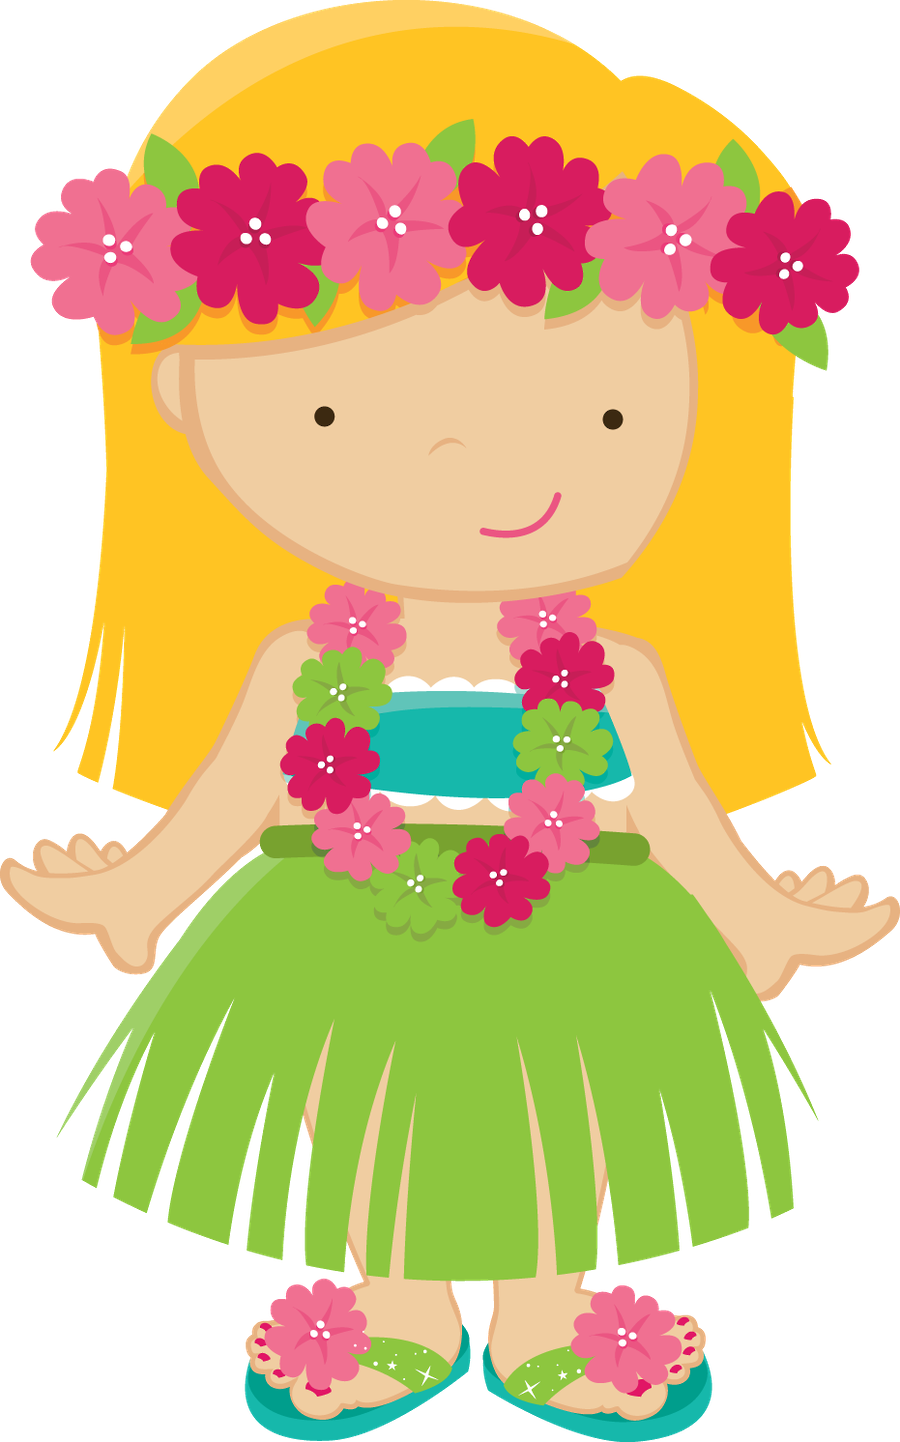 Free hawaiian thanksgiving clipart picture freeuse library ZWD_Hula_Girl_02.png | clipart | Pinterest | Clip art, Hawaiian and ... picture freeuse library